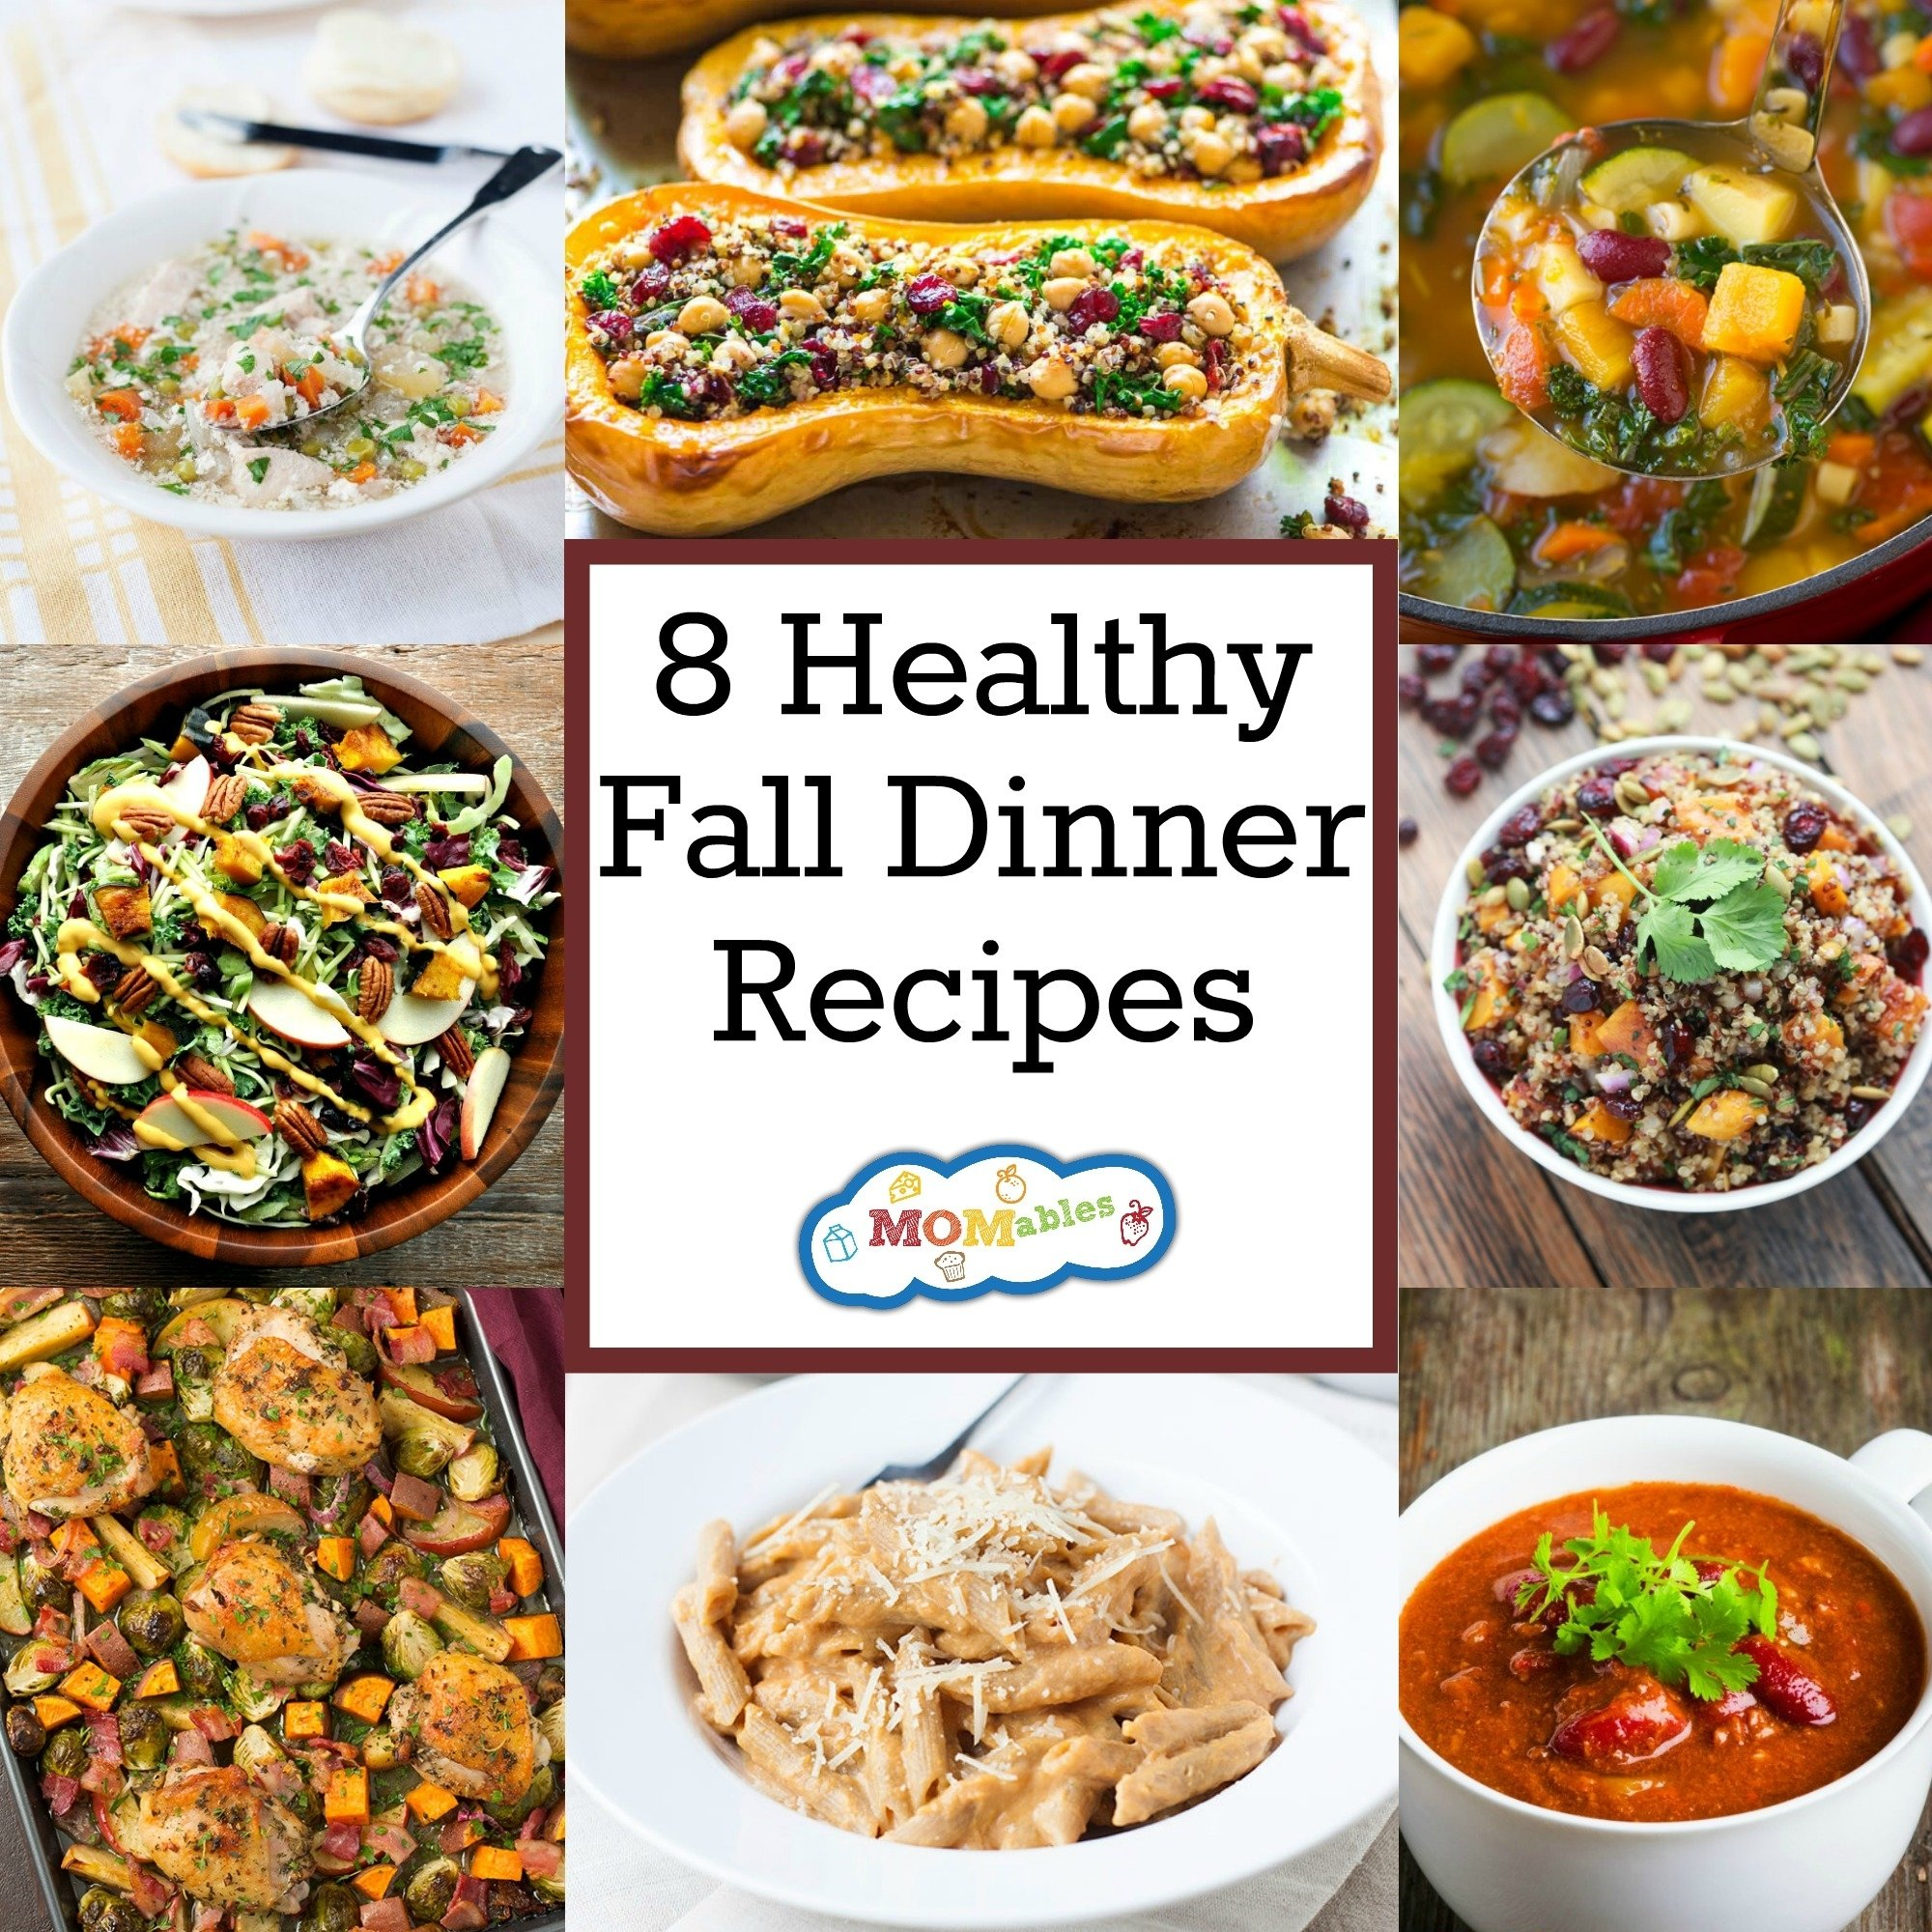 10 Unique Weeknight Dinner Ideas For Families 8 healthy fall dinner recipes momables good food plan on it 1 2021